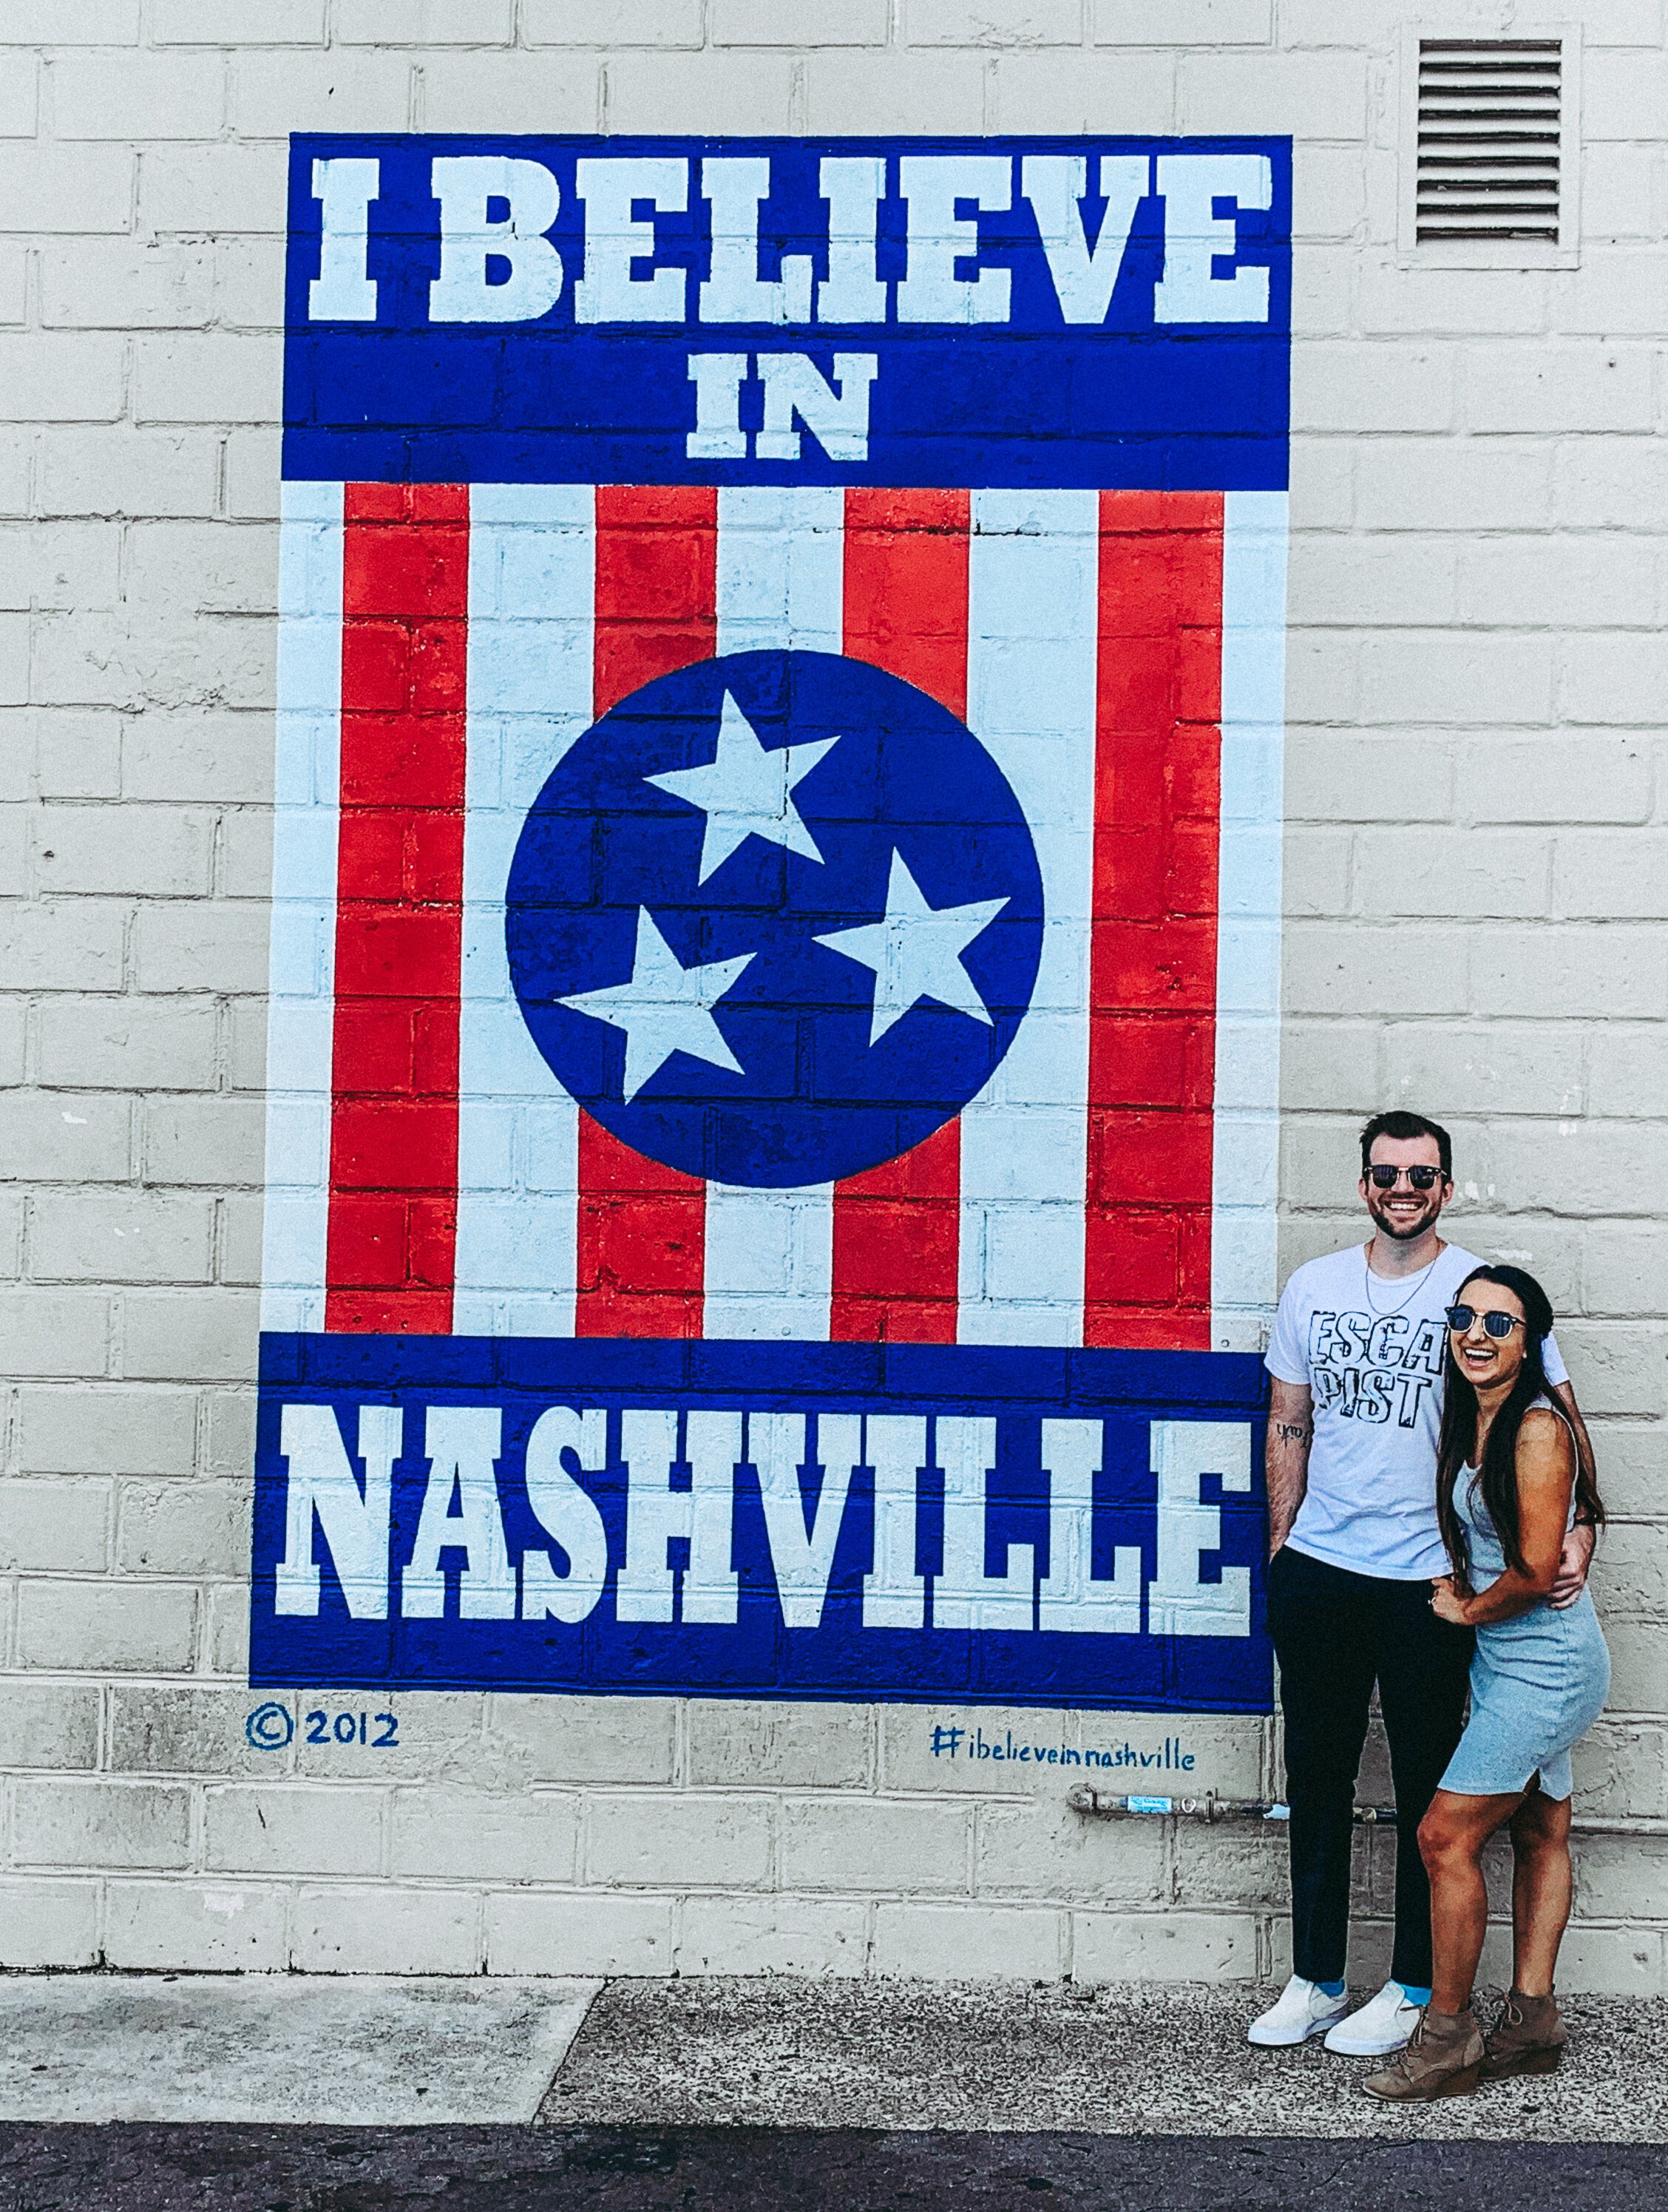 We finally made it to Nashville and decided to explore the city before we go to the Dove Awards.